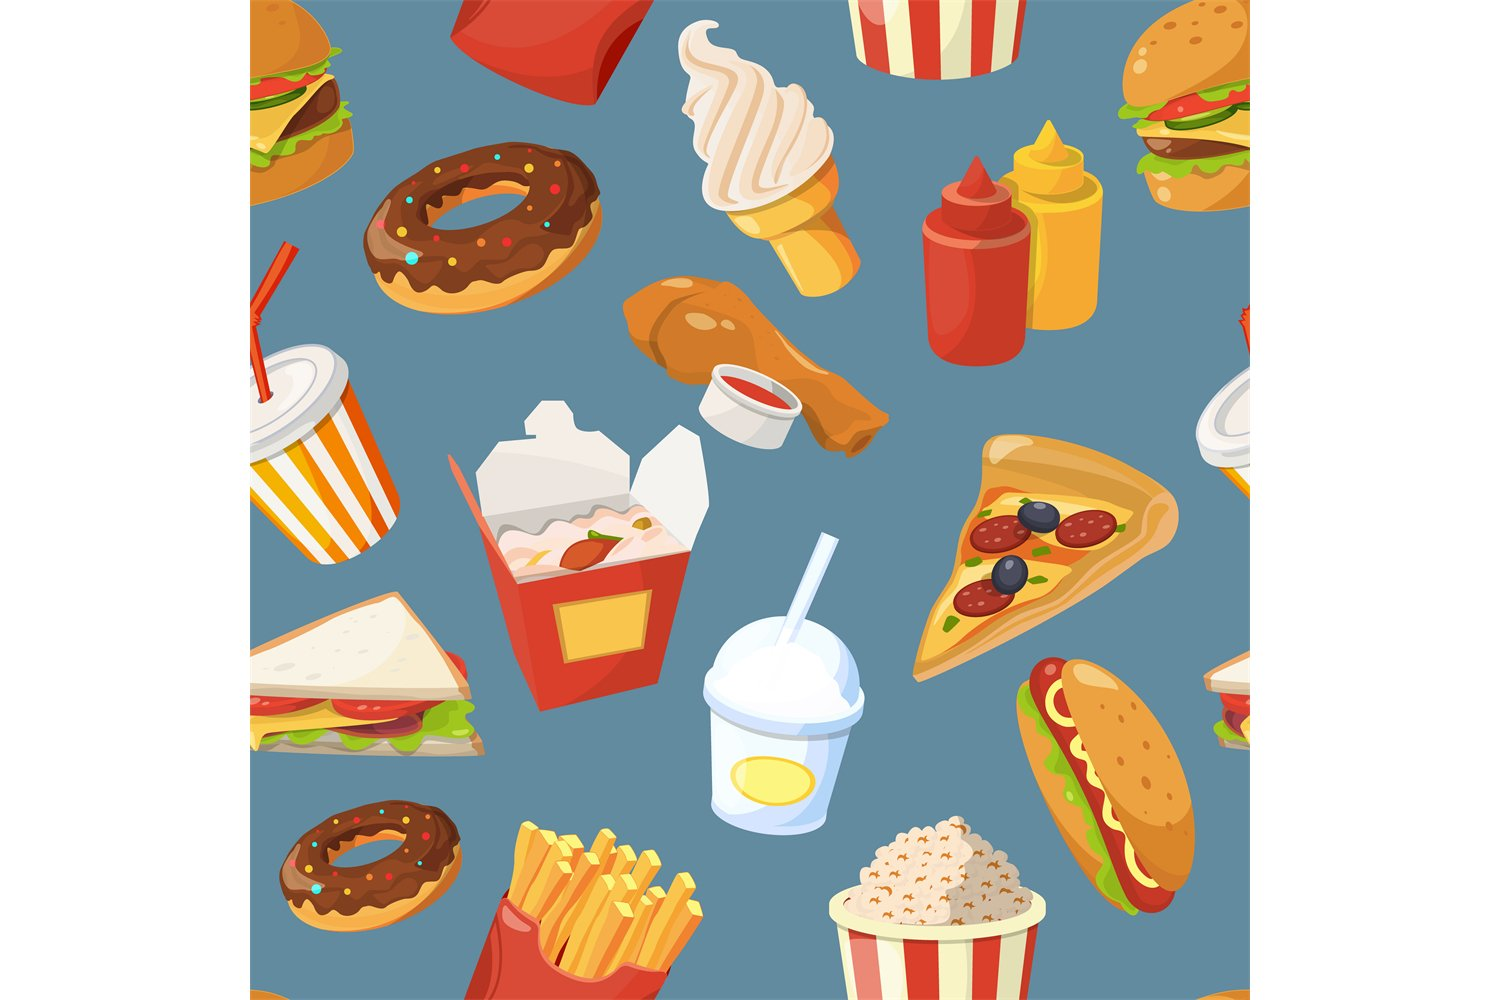 Fast Food Vector Seamless Pattern With Cold Water Sandwich 766767 Patterns Design Bundles However, when the tap is turned off, so too is the hot water supply. design bundles